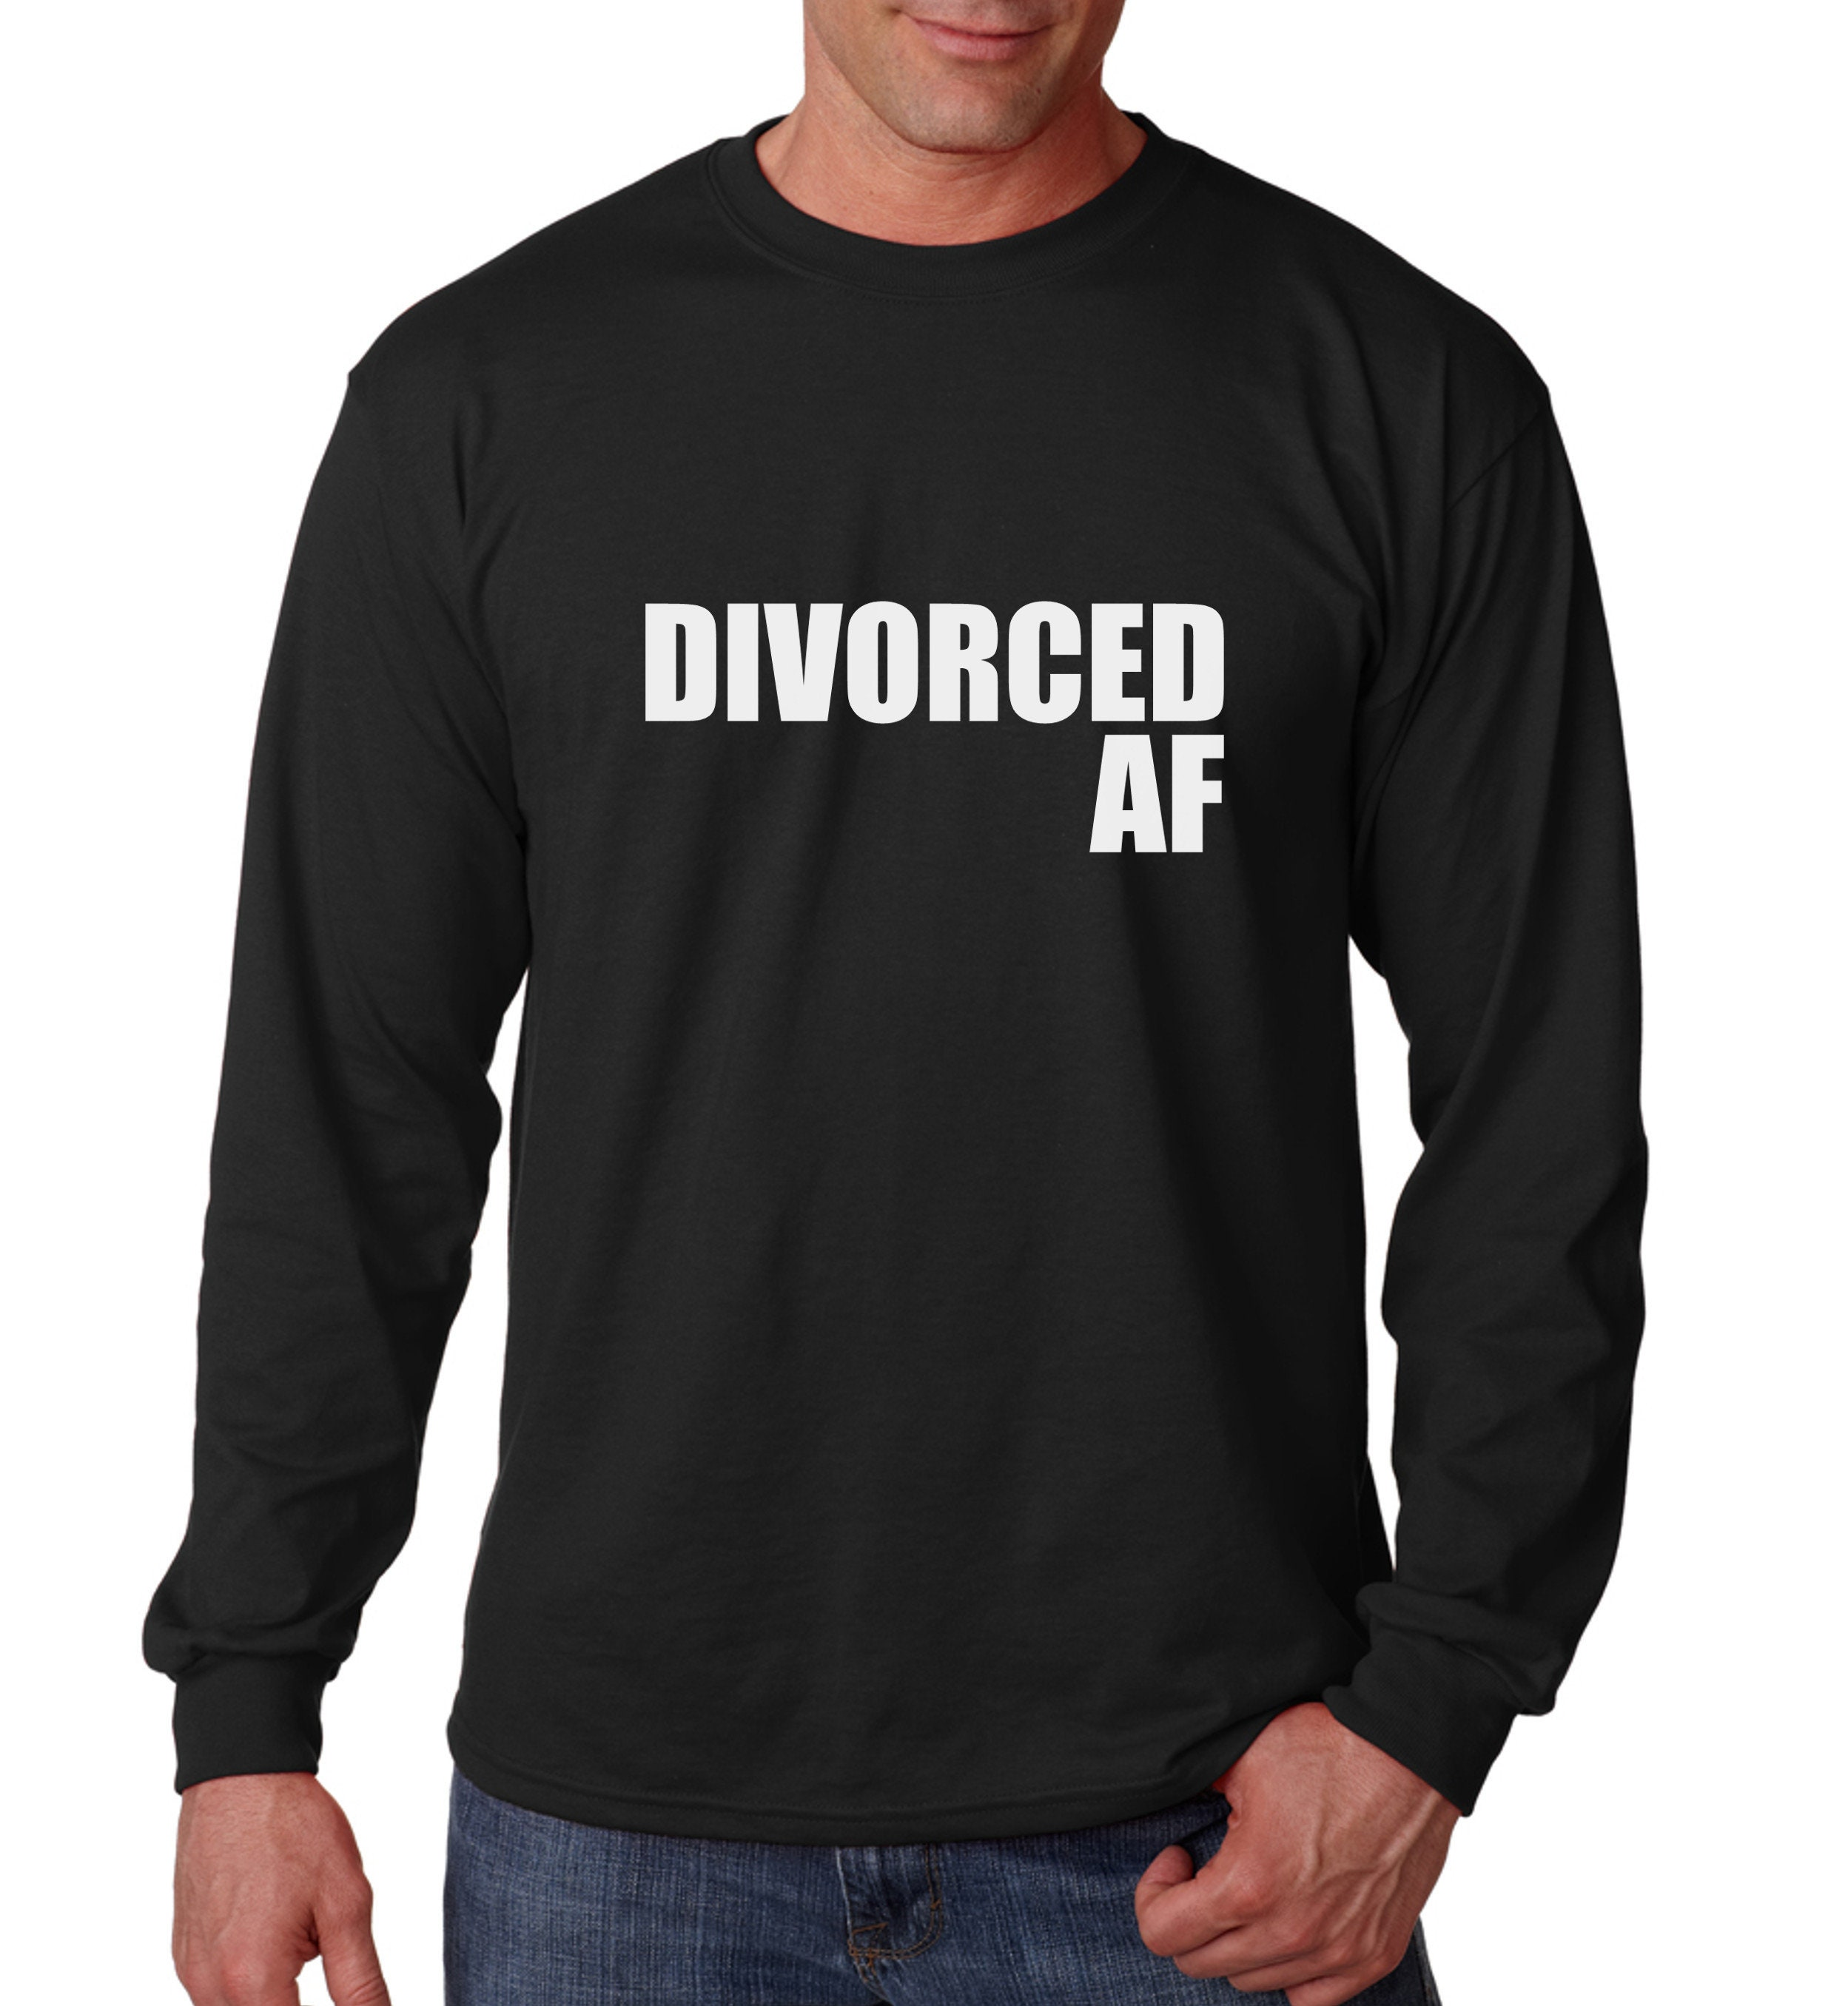 Long Sleeve Divorced Af Shirt Funny Valentines T Shirt